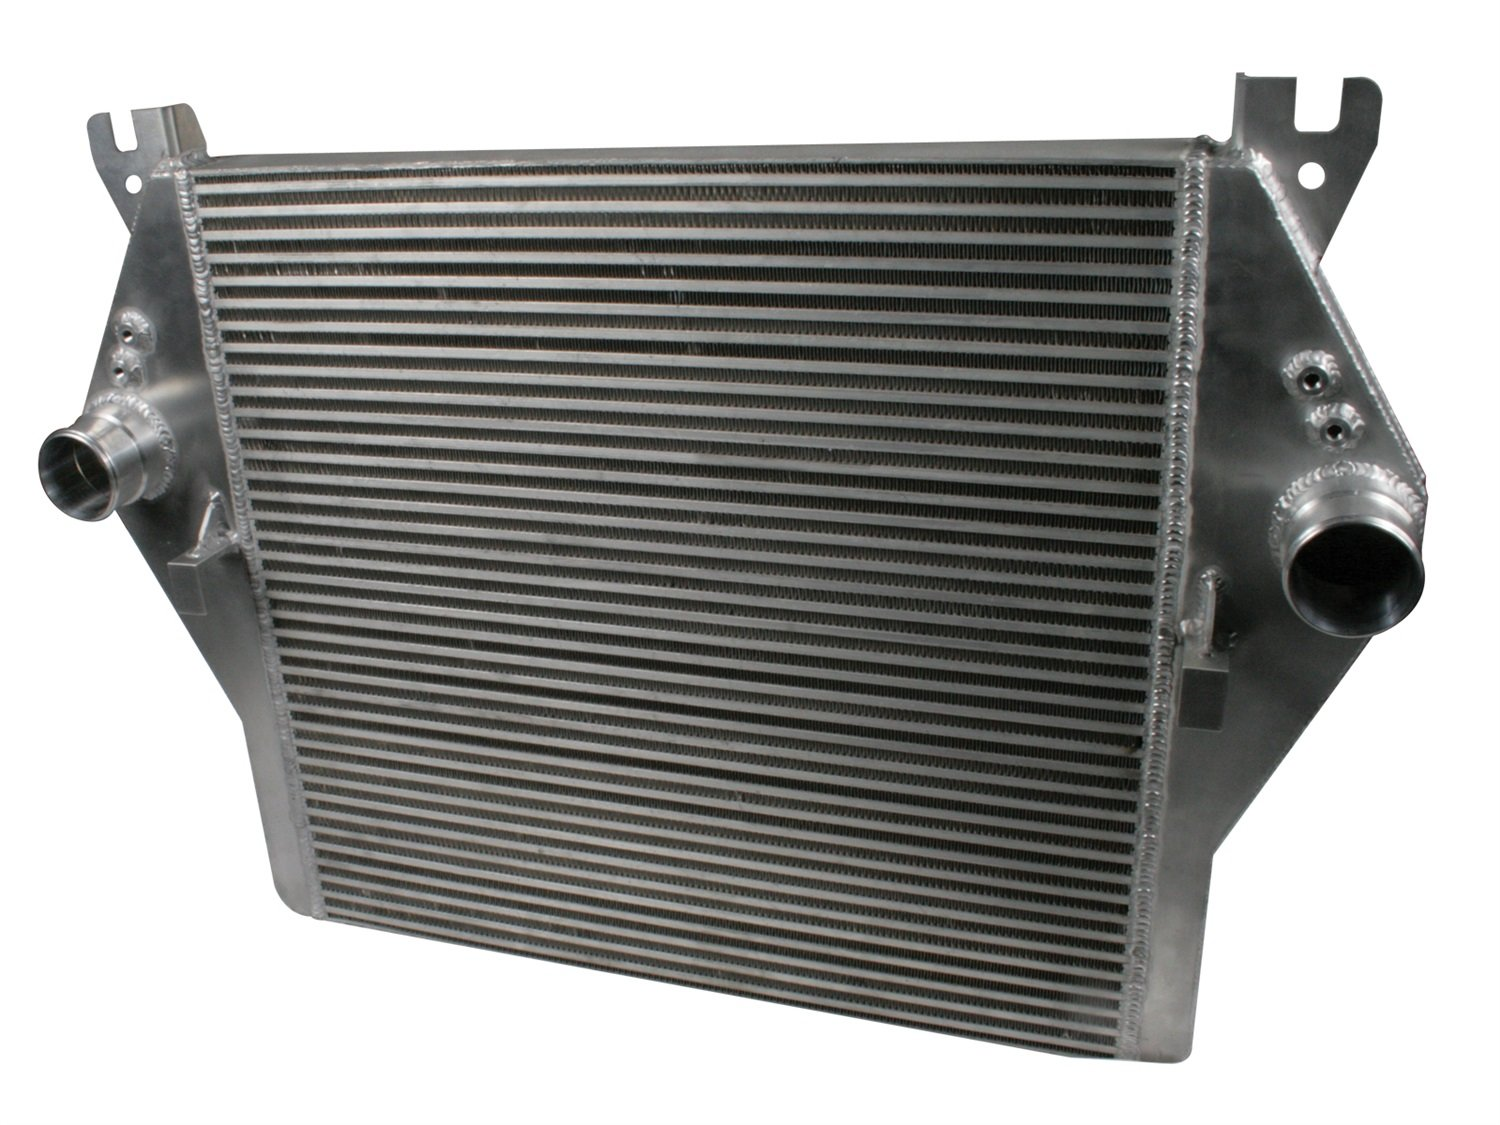 aFe 46-20011 Bladerunner Intercooler by aFe Power (Image #2)